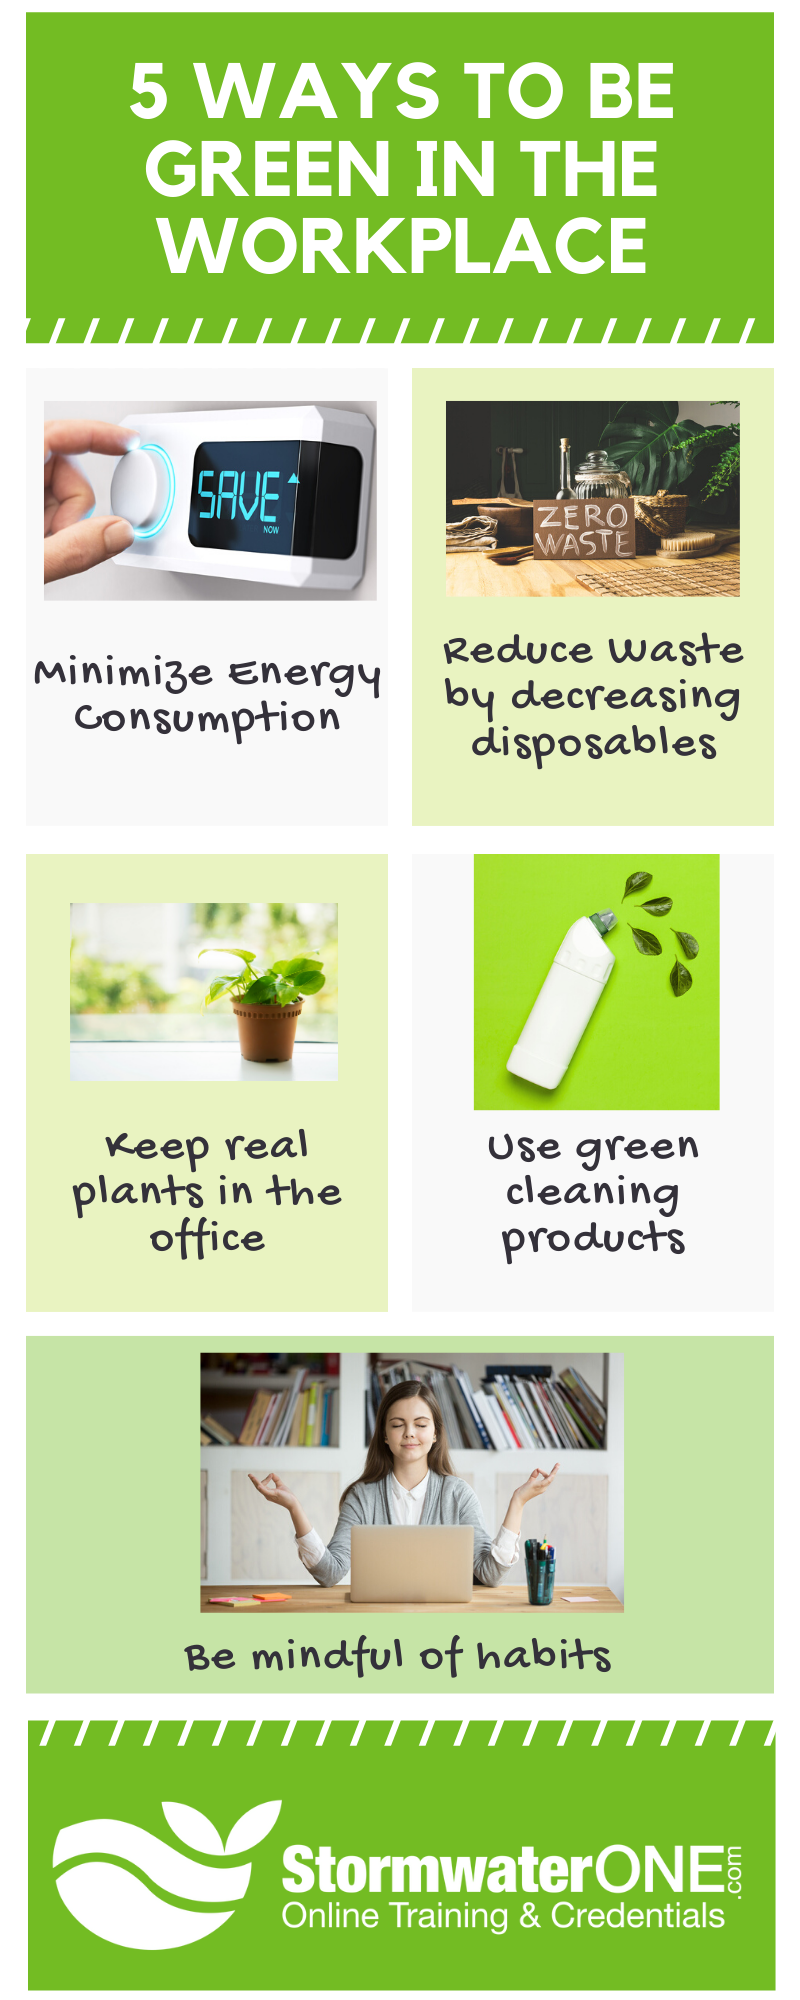 5 ways to go green in the workplace